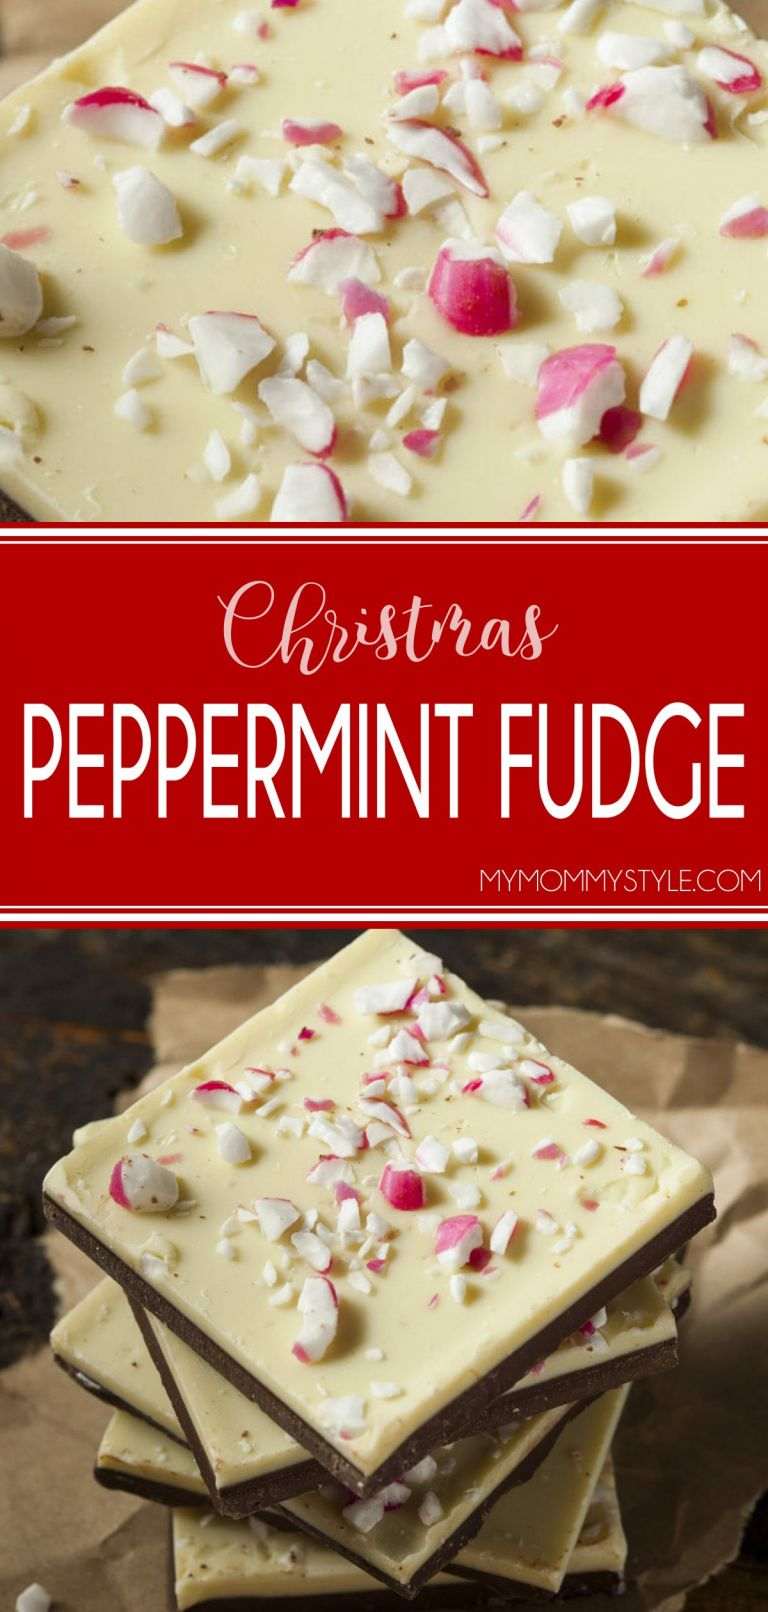 delicious peppermint fudge that is perfect for Christmas time